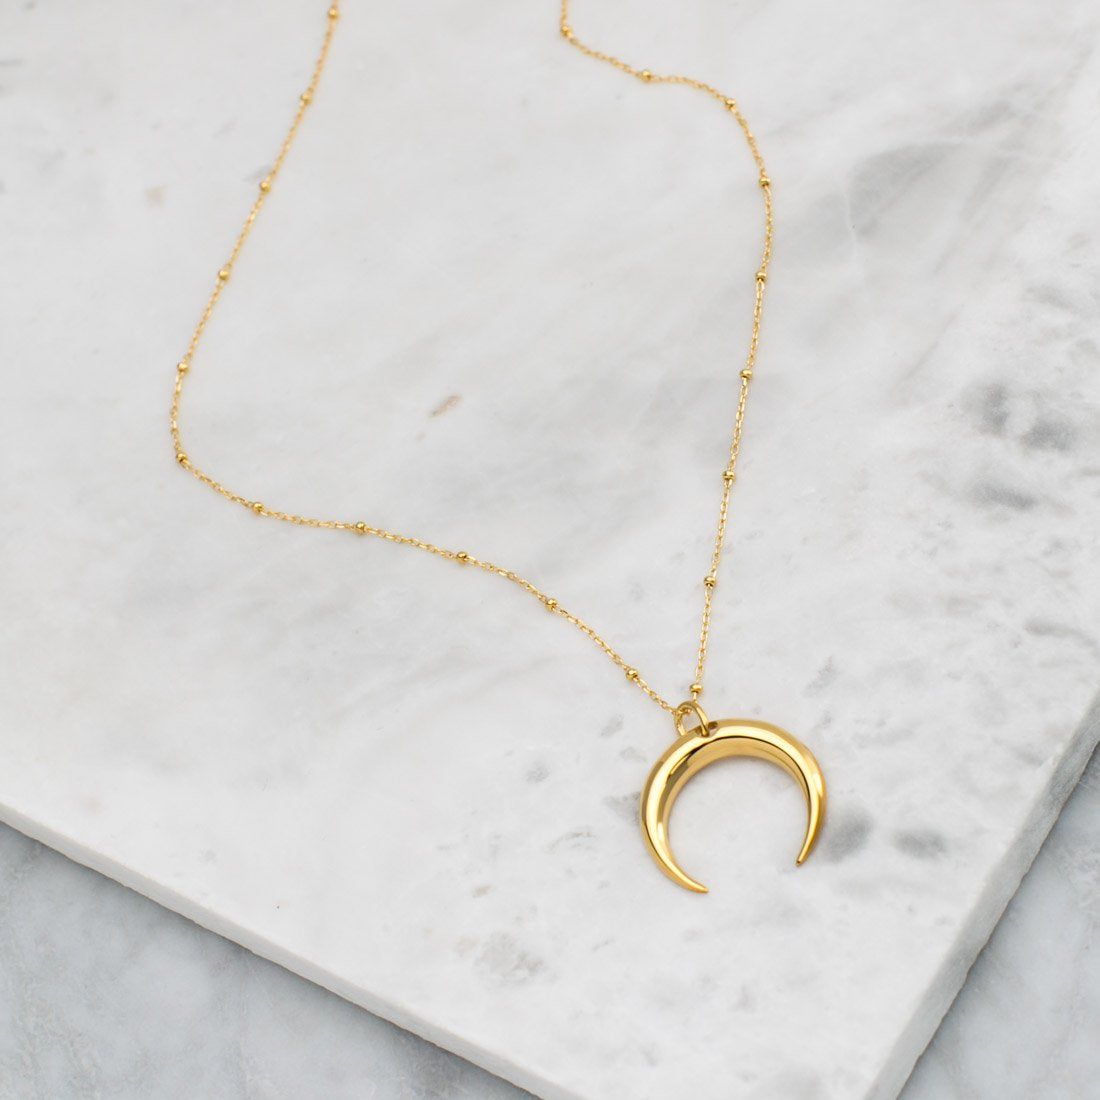 Gold Moon Illusion Necklace